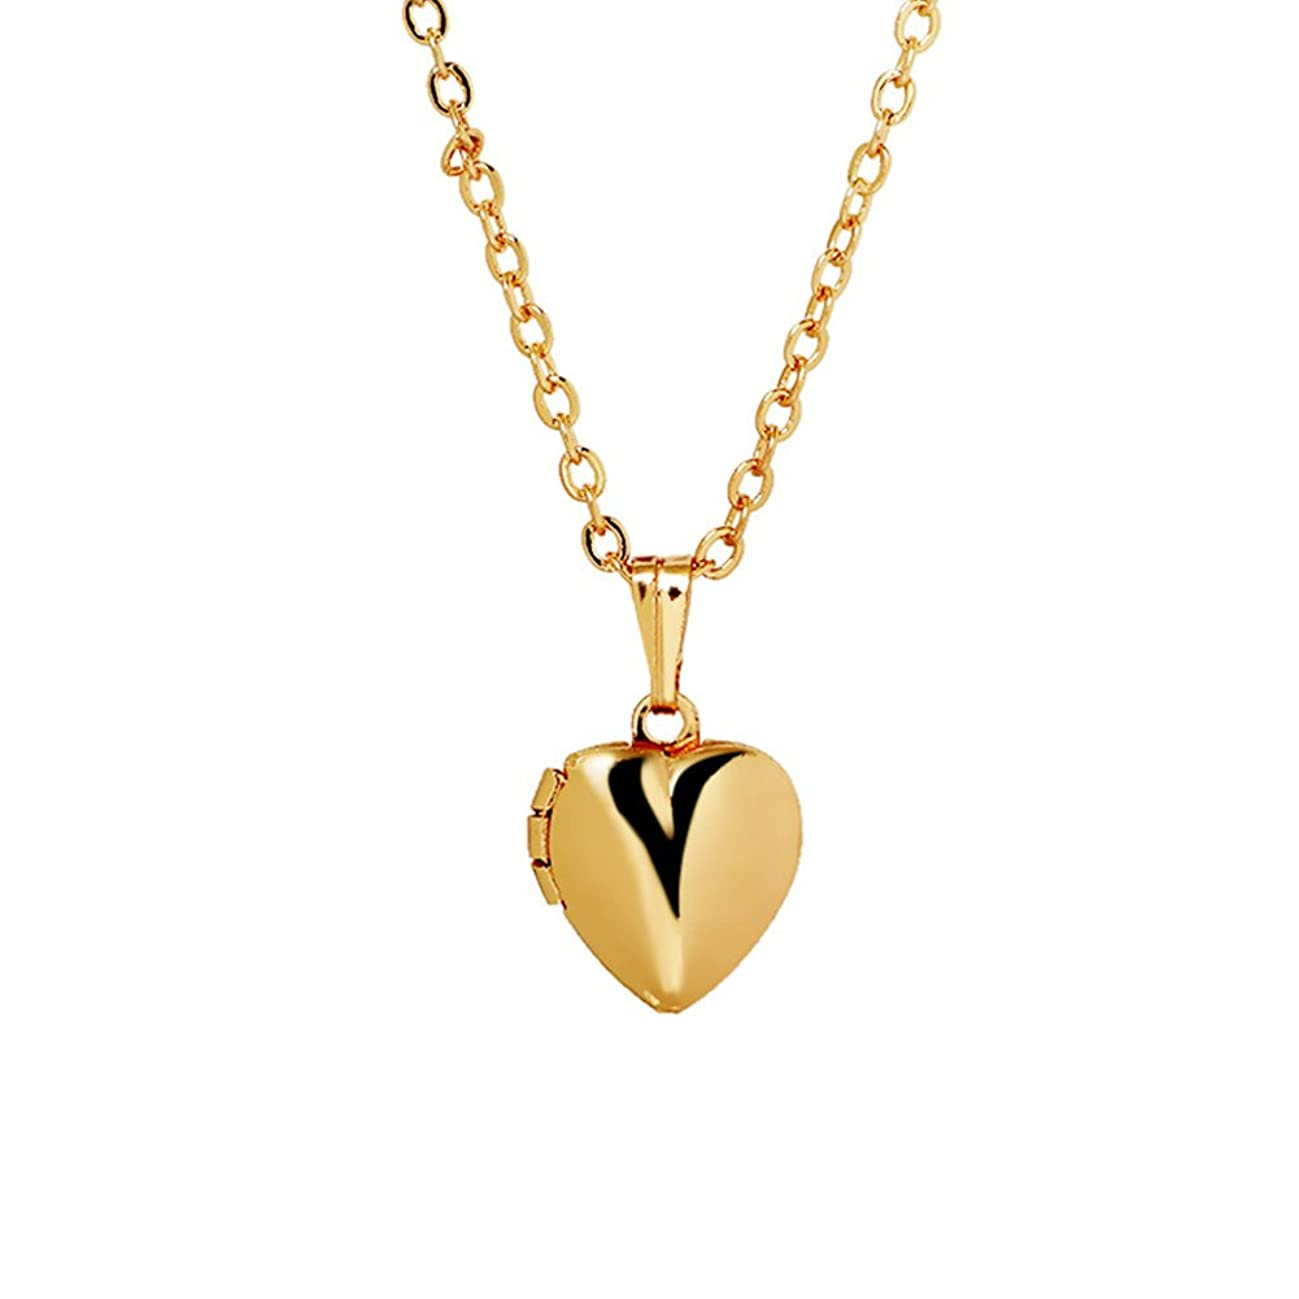 PORPI-JOJO Cute Simple Small 18k Gold Tone Lockets for Women,Locket Necklace That Holds Pictures Jewelry